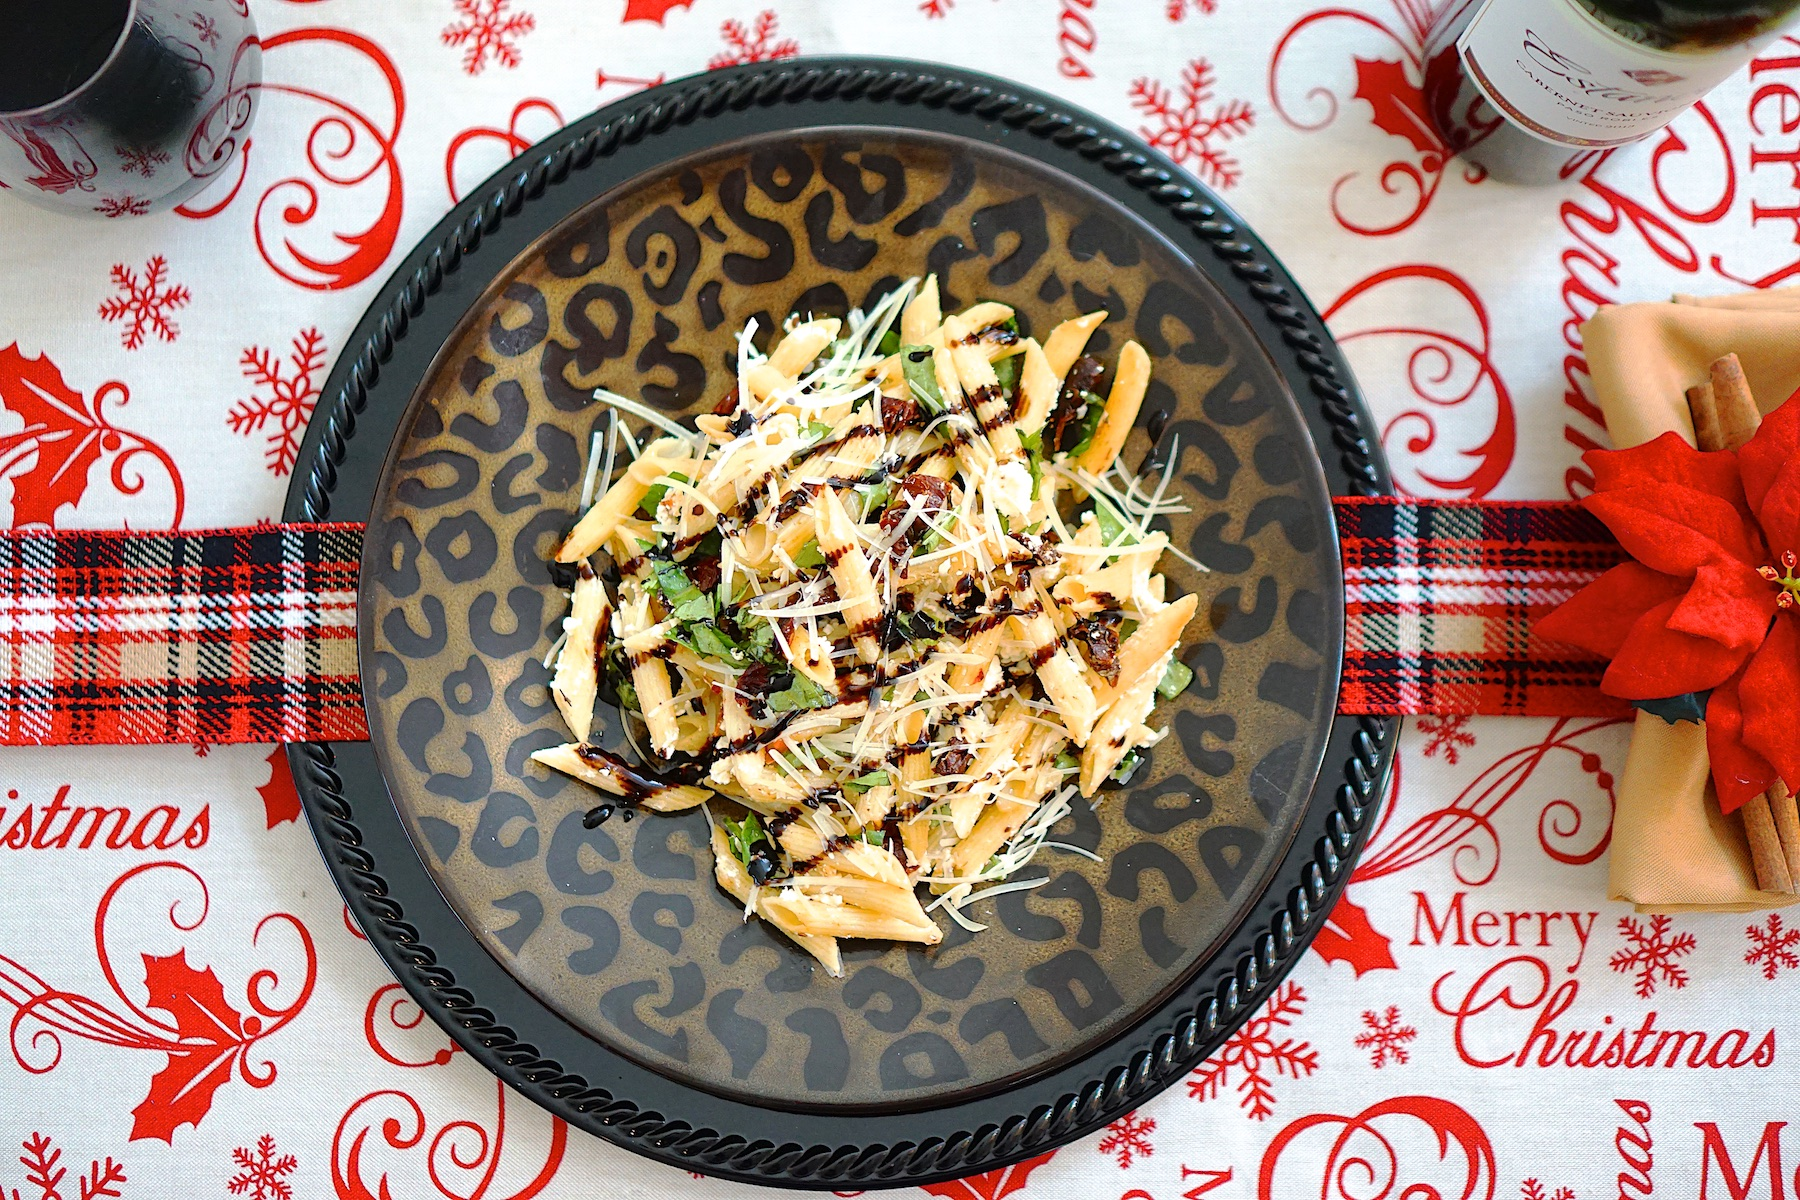 Easy Balsamic Glazed Penne with Sundried Tomatoes, Basil, and Goat Cheese